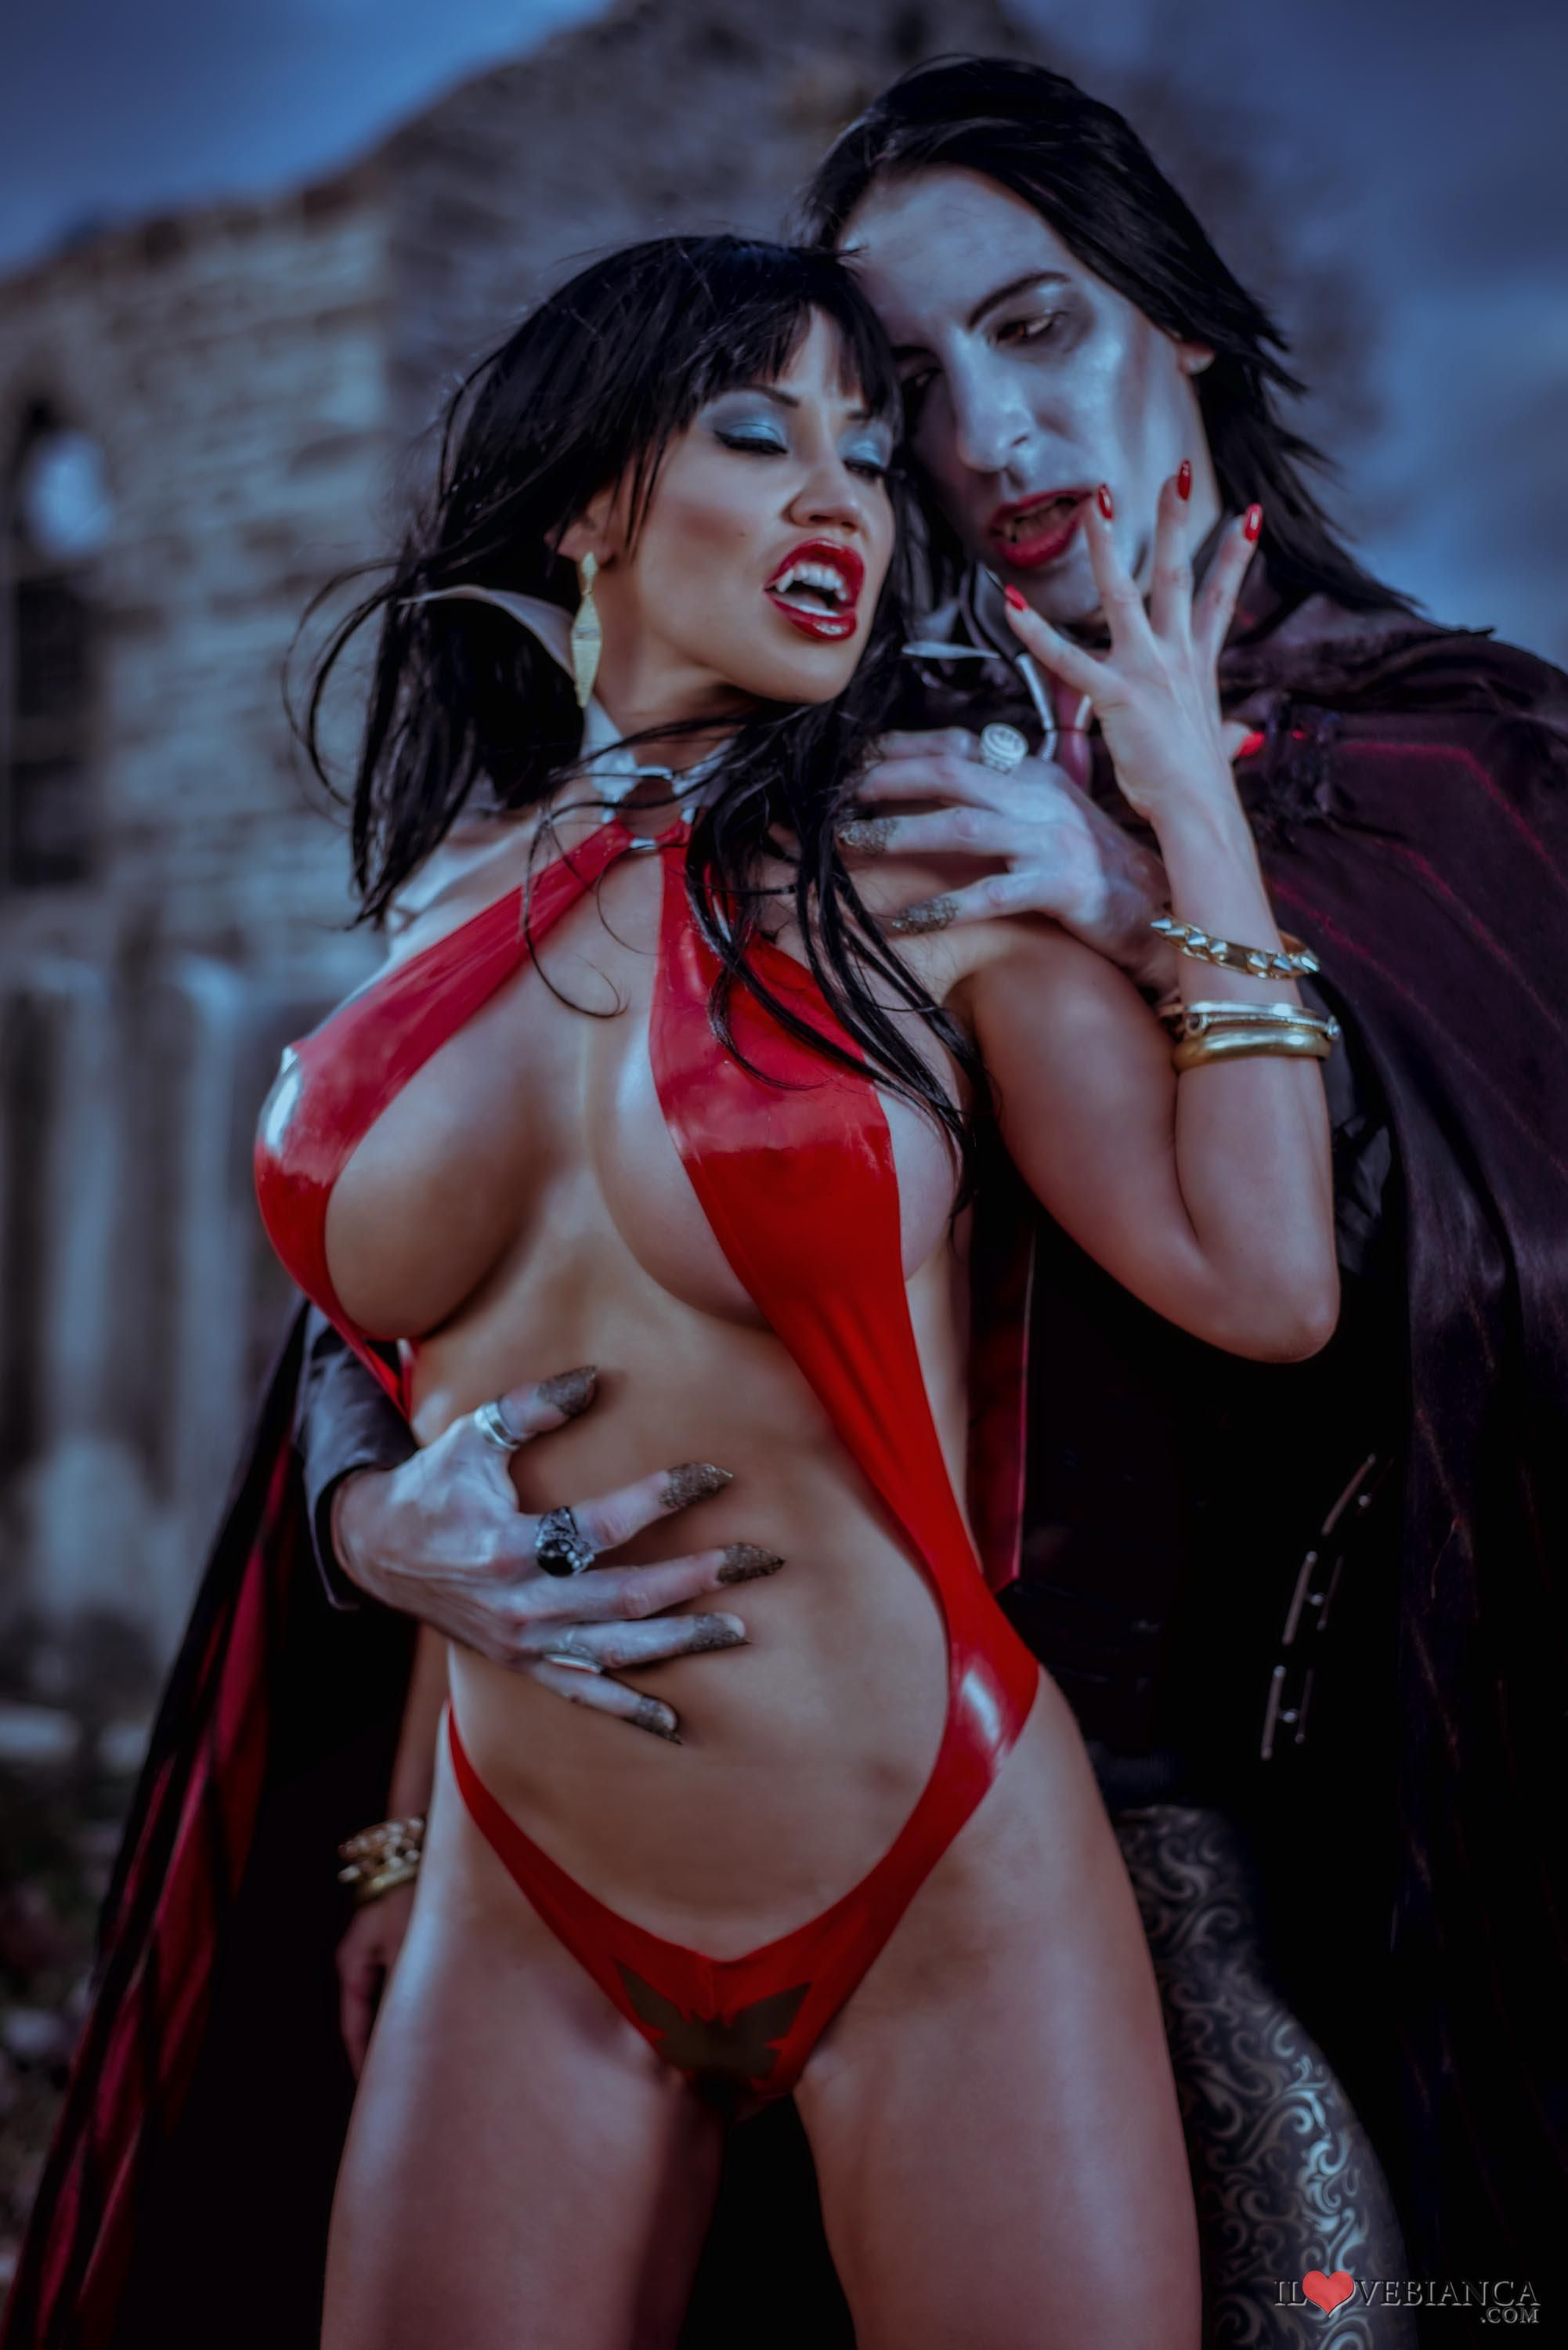 Oh oh oh sexy vampire by juliamadrigal on deviantart